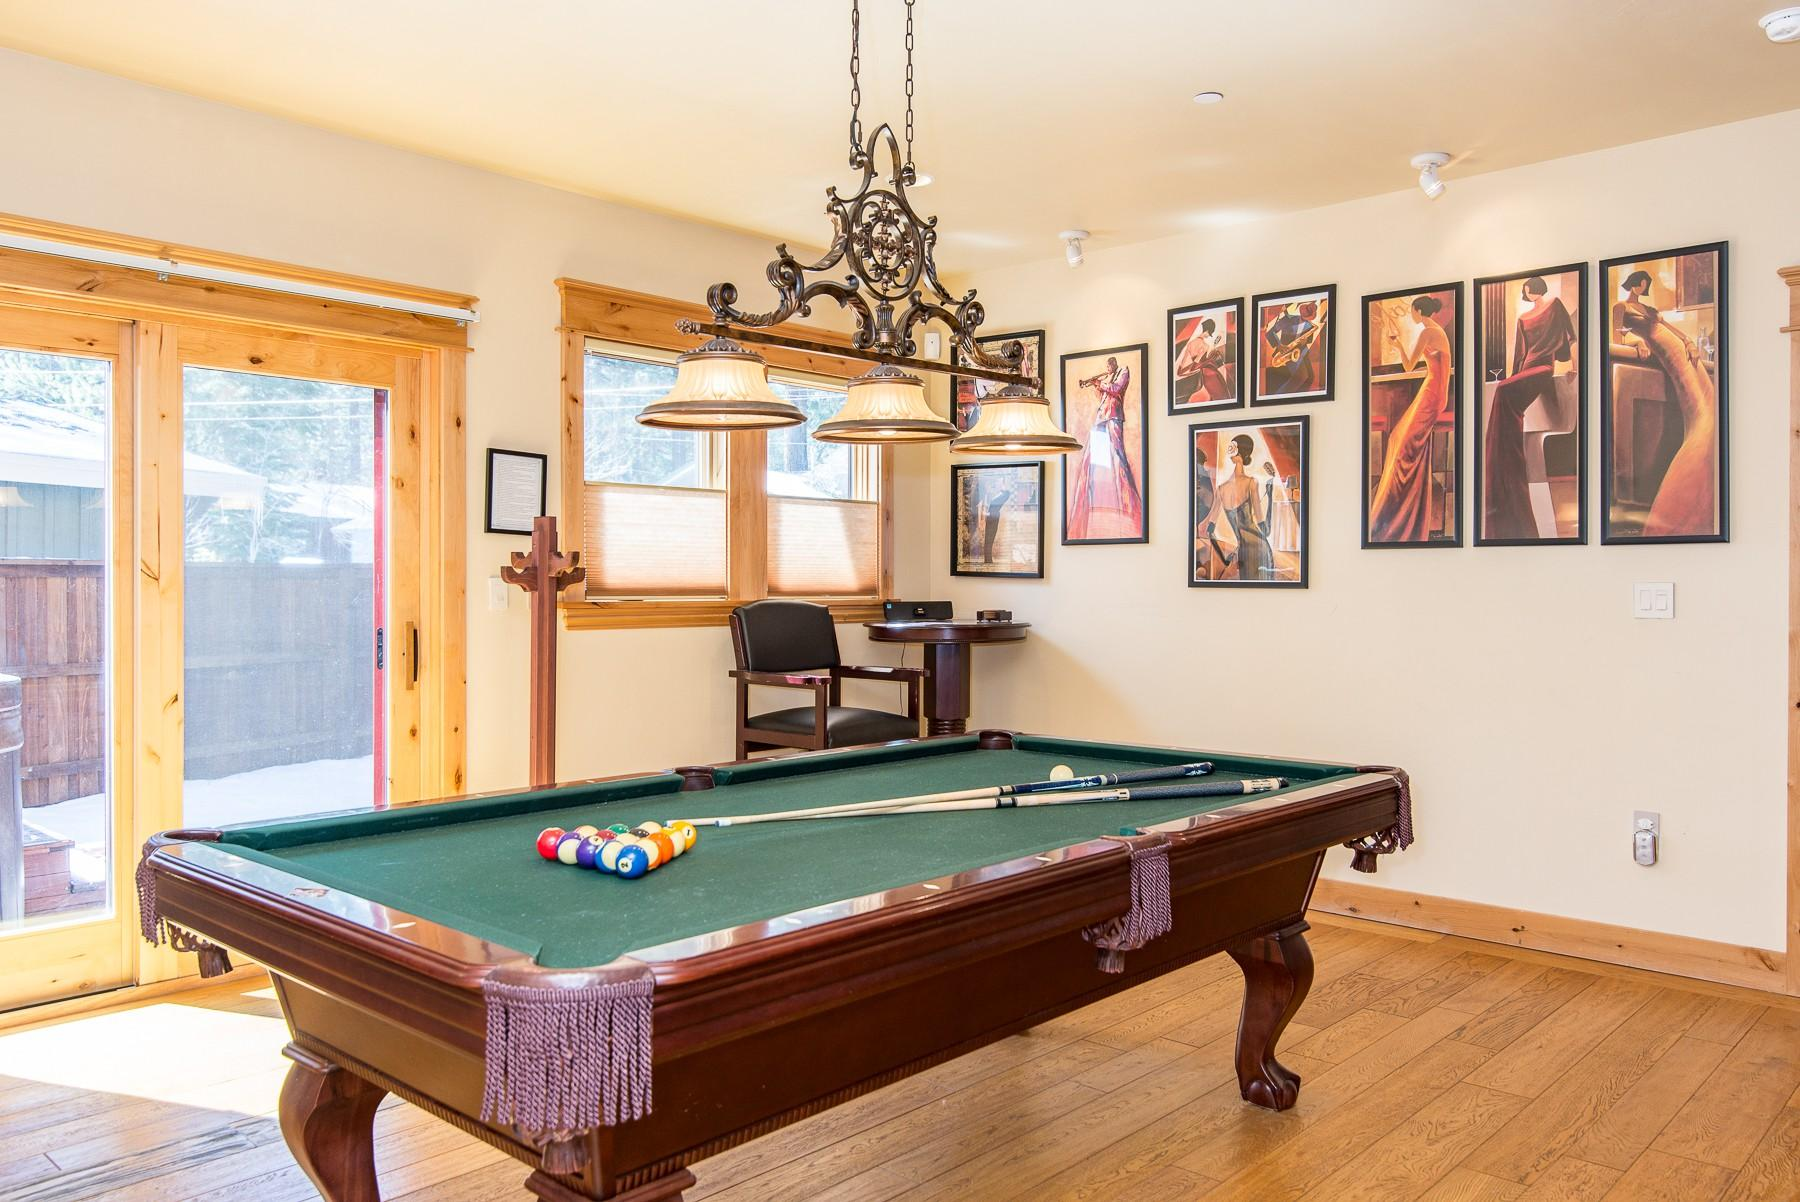 Rack up the pool table in the downstairs game room.